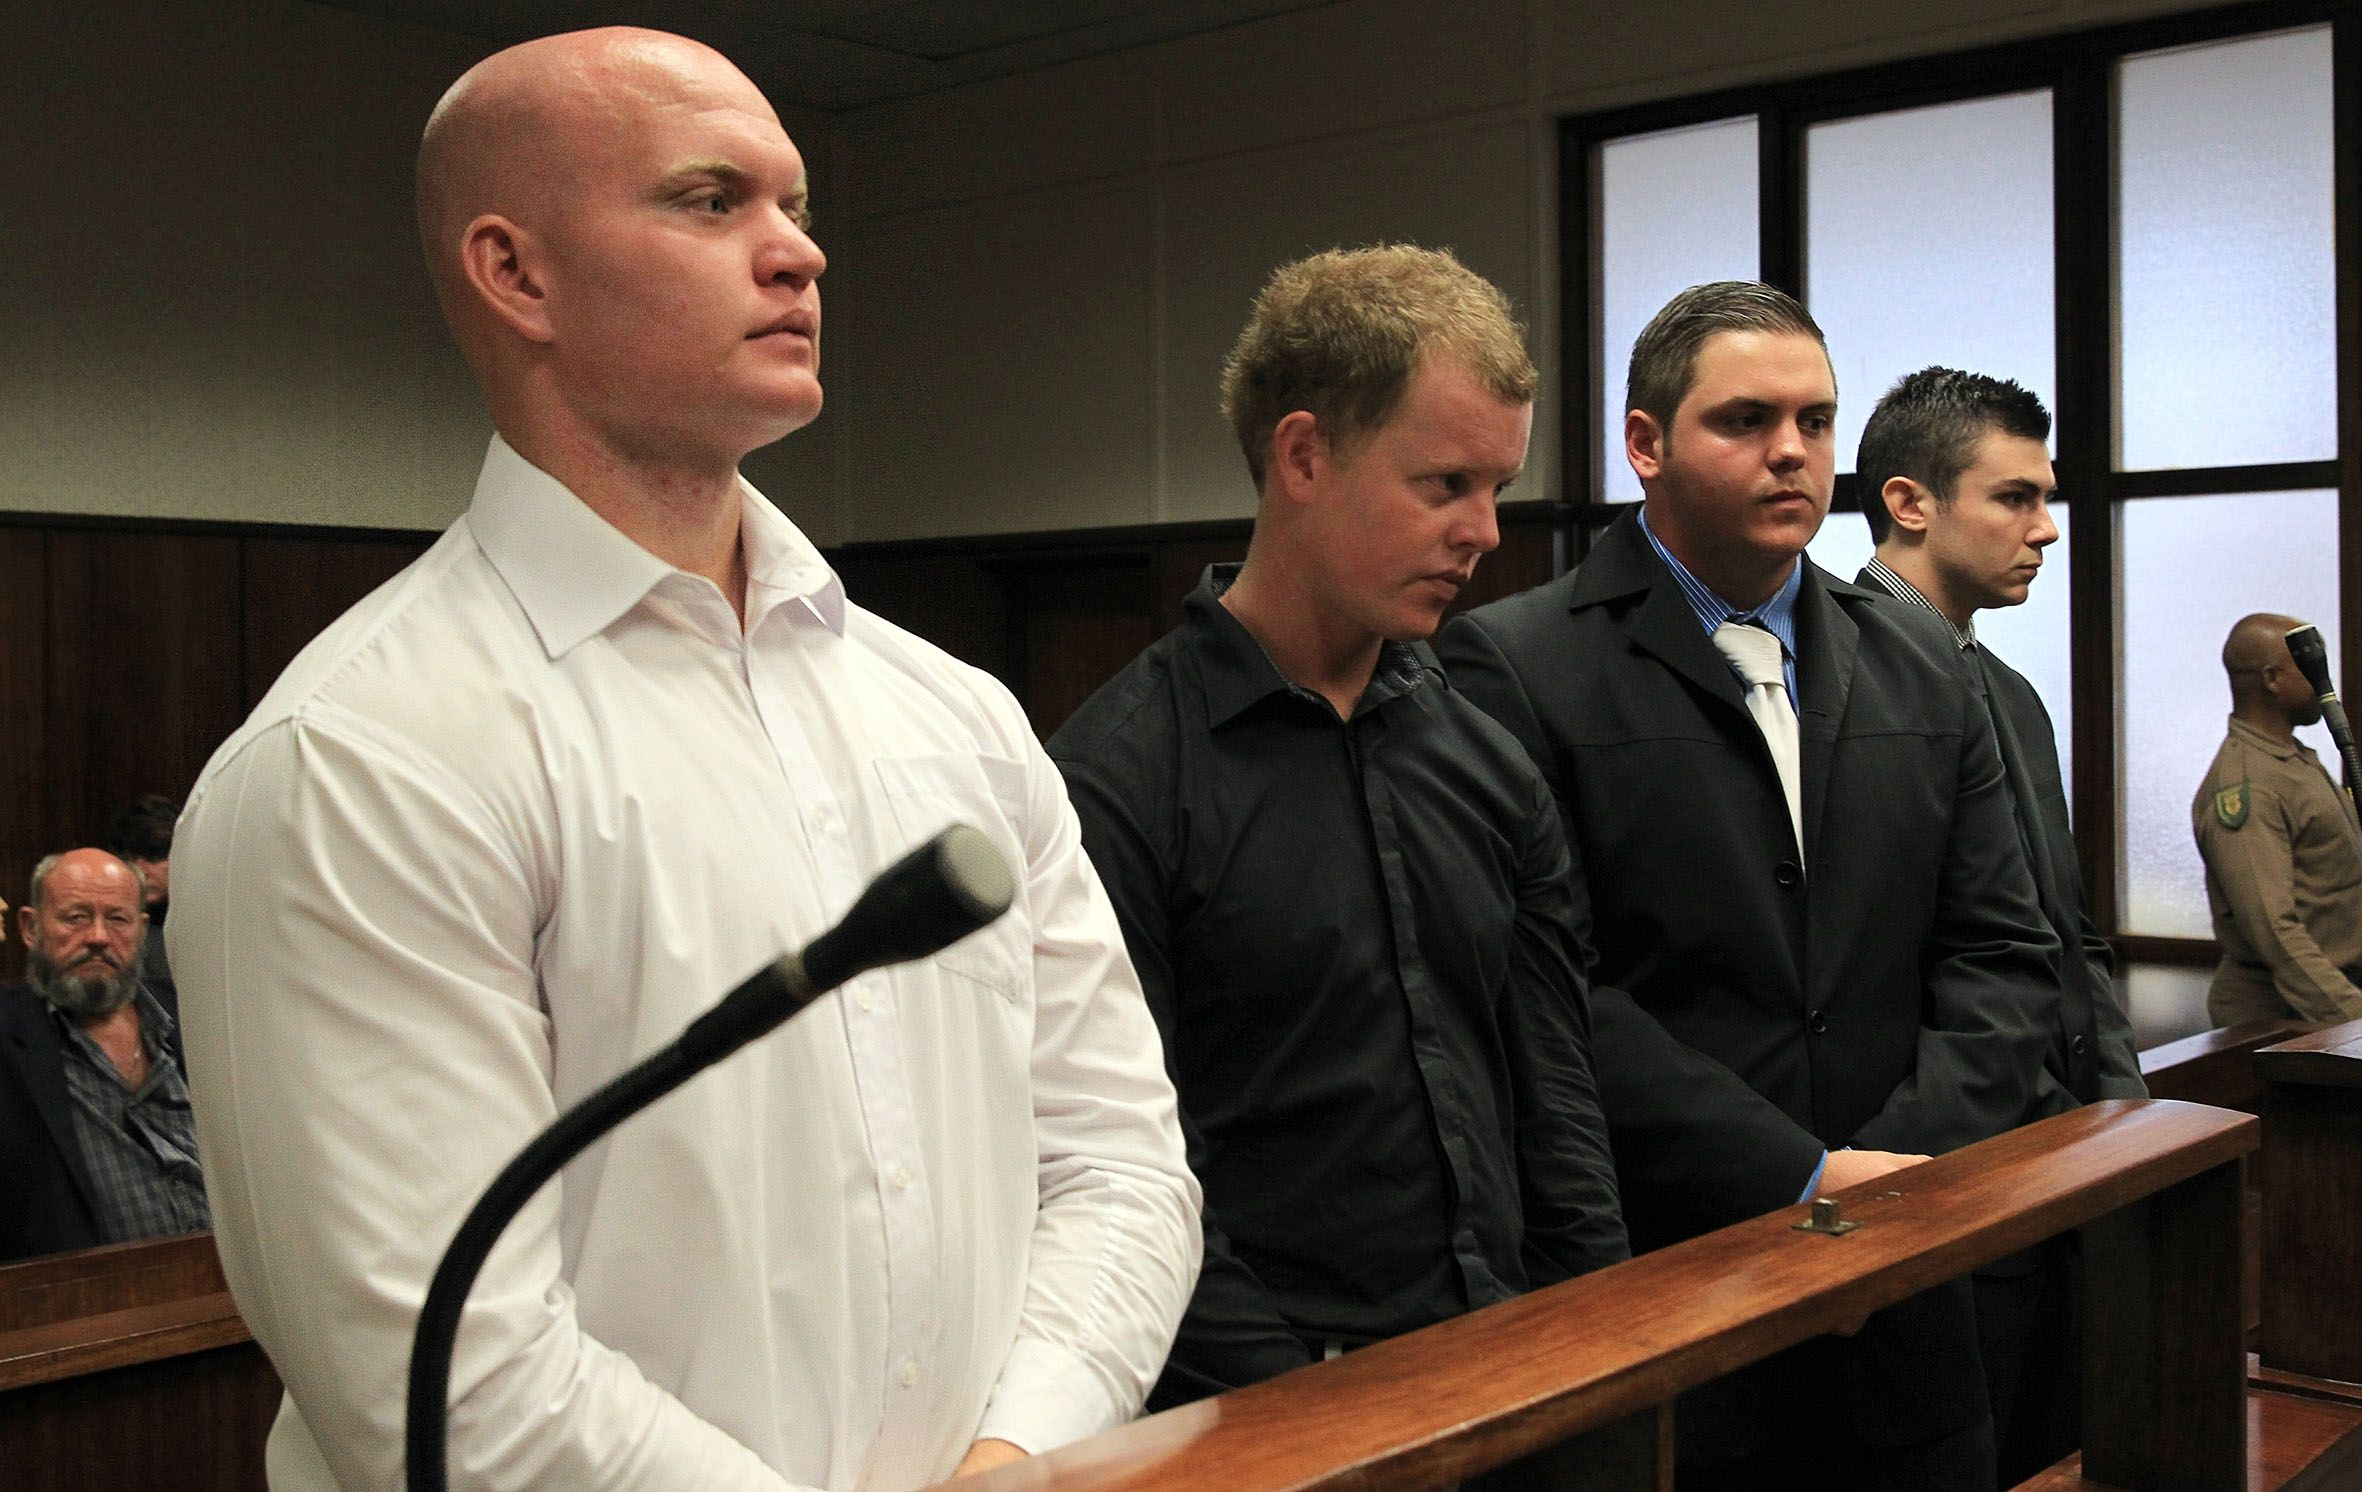 Trial of alleged killers of Marine Brett Williams adjourned